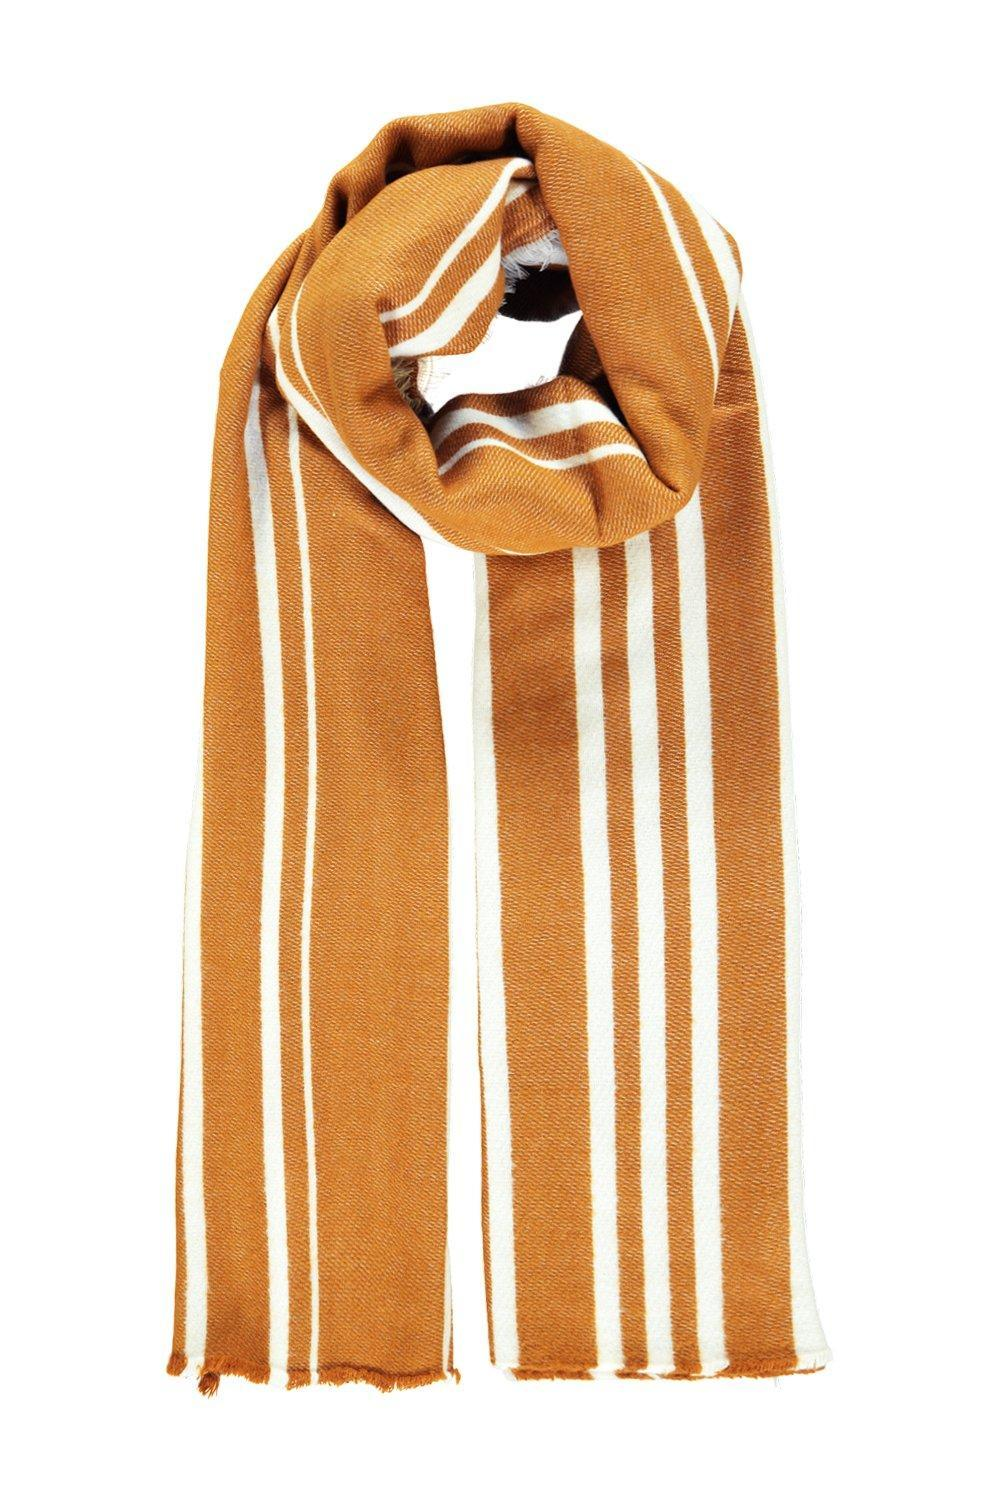 Varied Stripe Wool Oversize Scarf Mustard - predominant colour: mustard; occasions: casual, creative work; type of pattern: standard; style: regular; size: large; material: knits; pattern: vertical stripes; season: a/w 2016; wardrobe: highlight